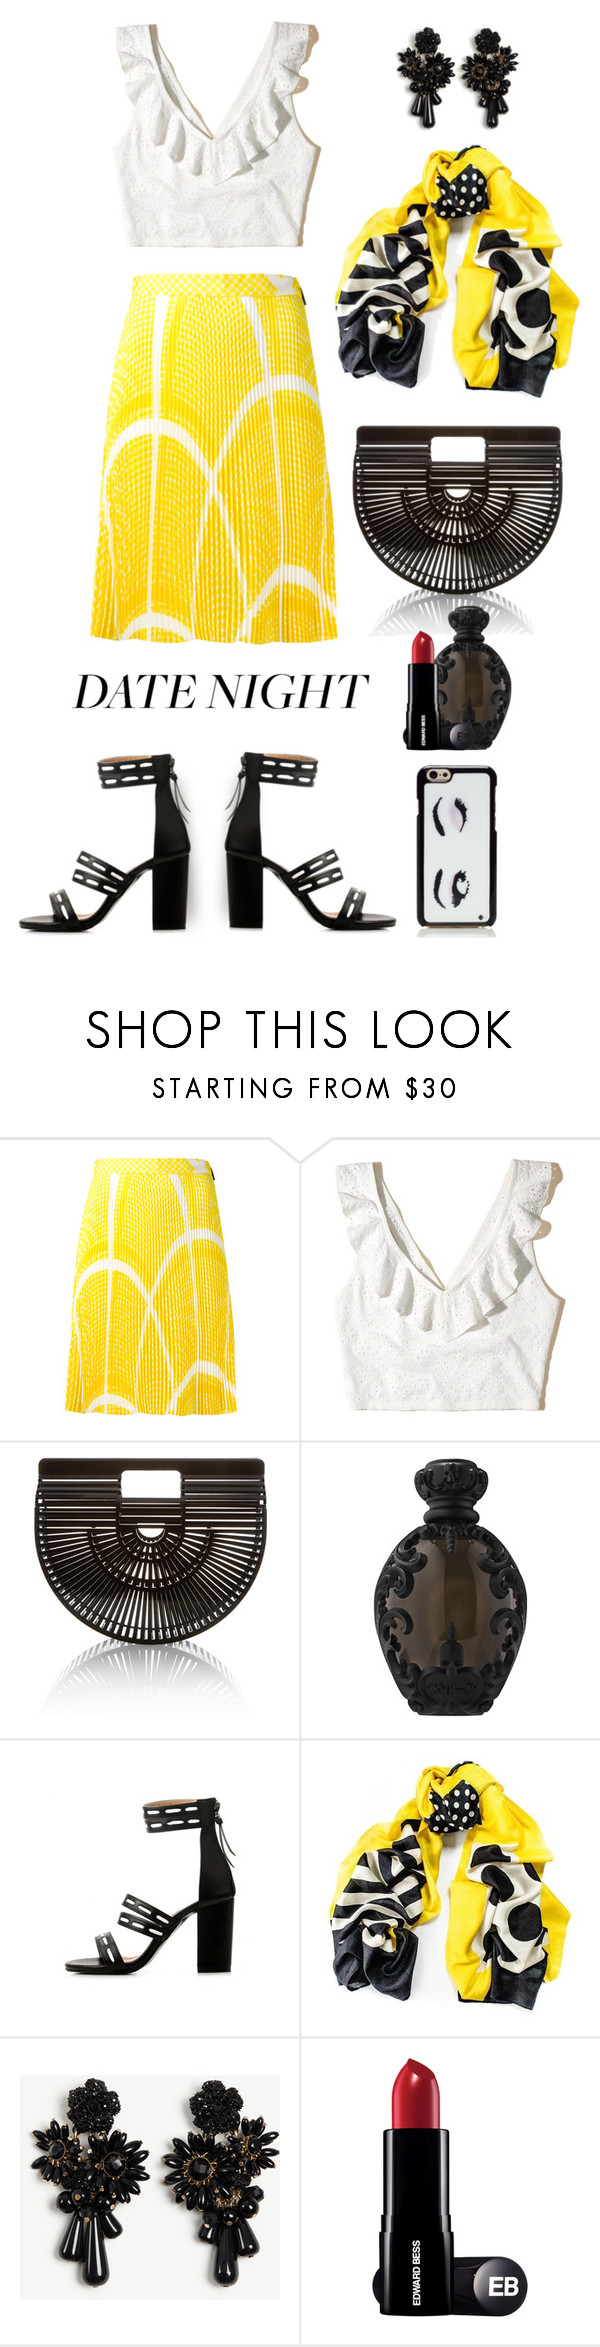 """""""summer date"""" by art-gives-me-life ❤ liked on Polyvore featuring MSGM, Hollister Co., Cult Gaia, Kat Von D, Black, Ann Taylor, Kate Spade and contestentry"""